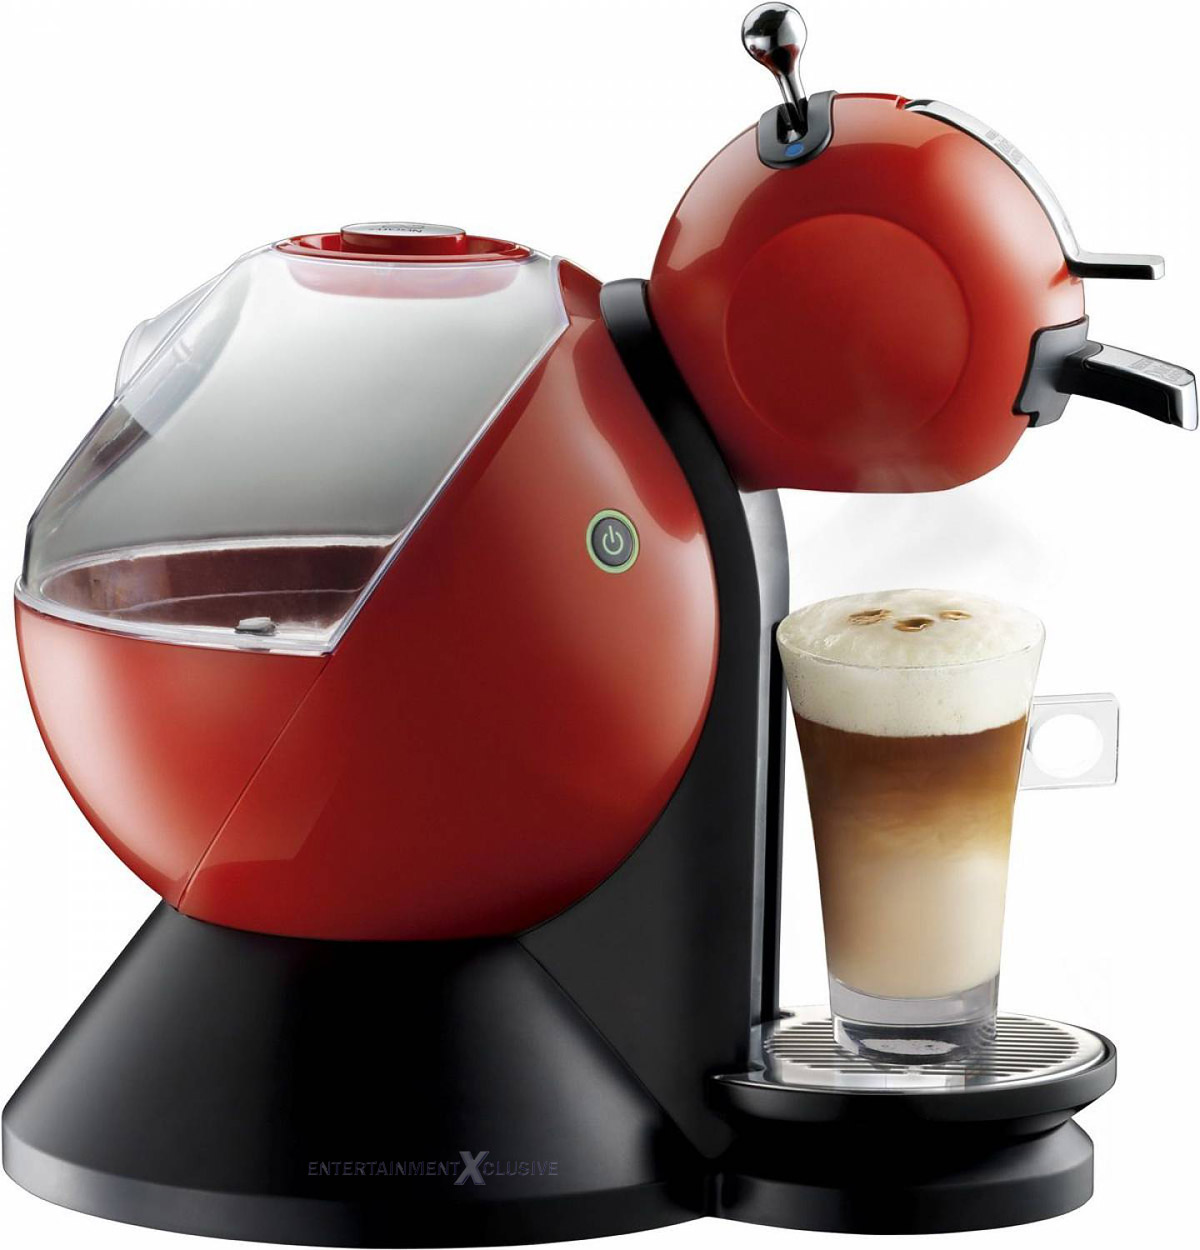 nescaf dolce gusto by krups kp210640 coffee machine red 15 bar pressure pump ebay. Black Bedroom Furniture Sets. Home Design Ideas